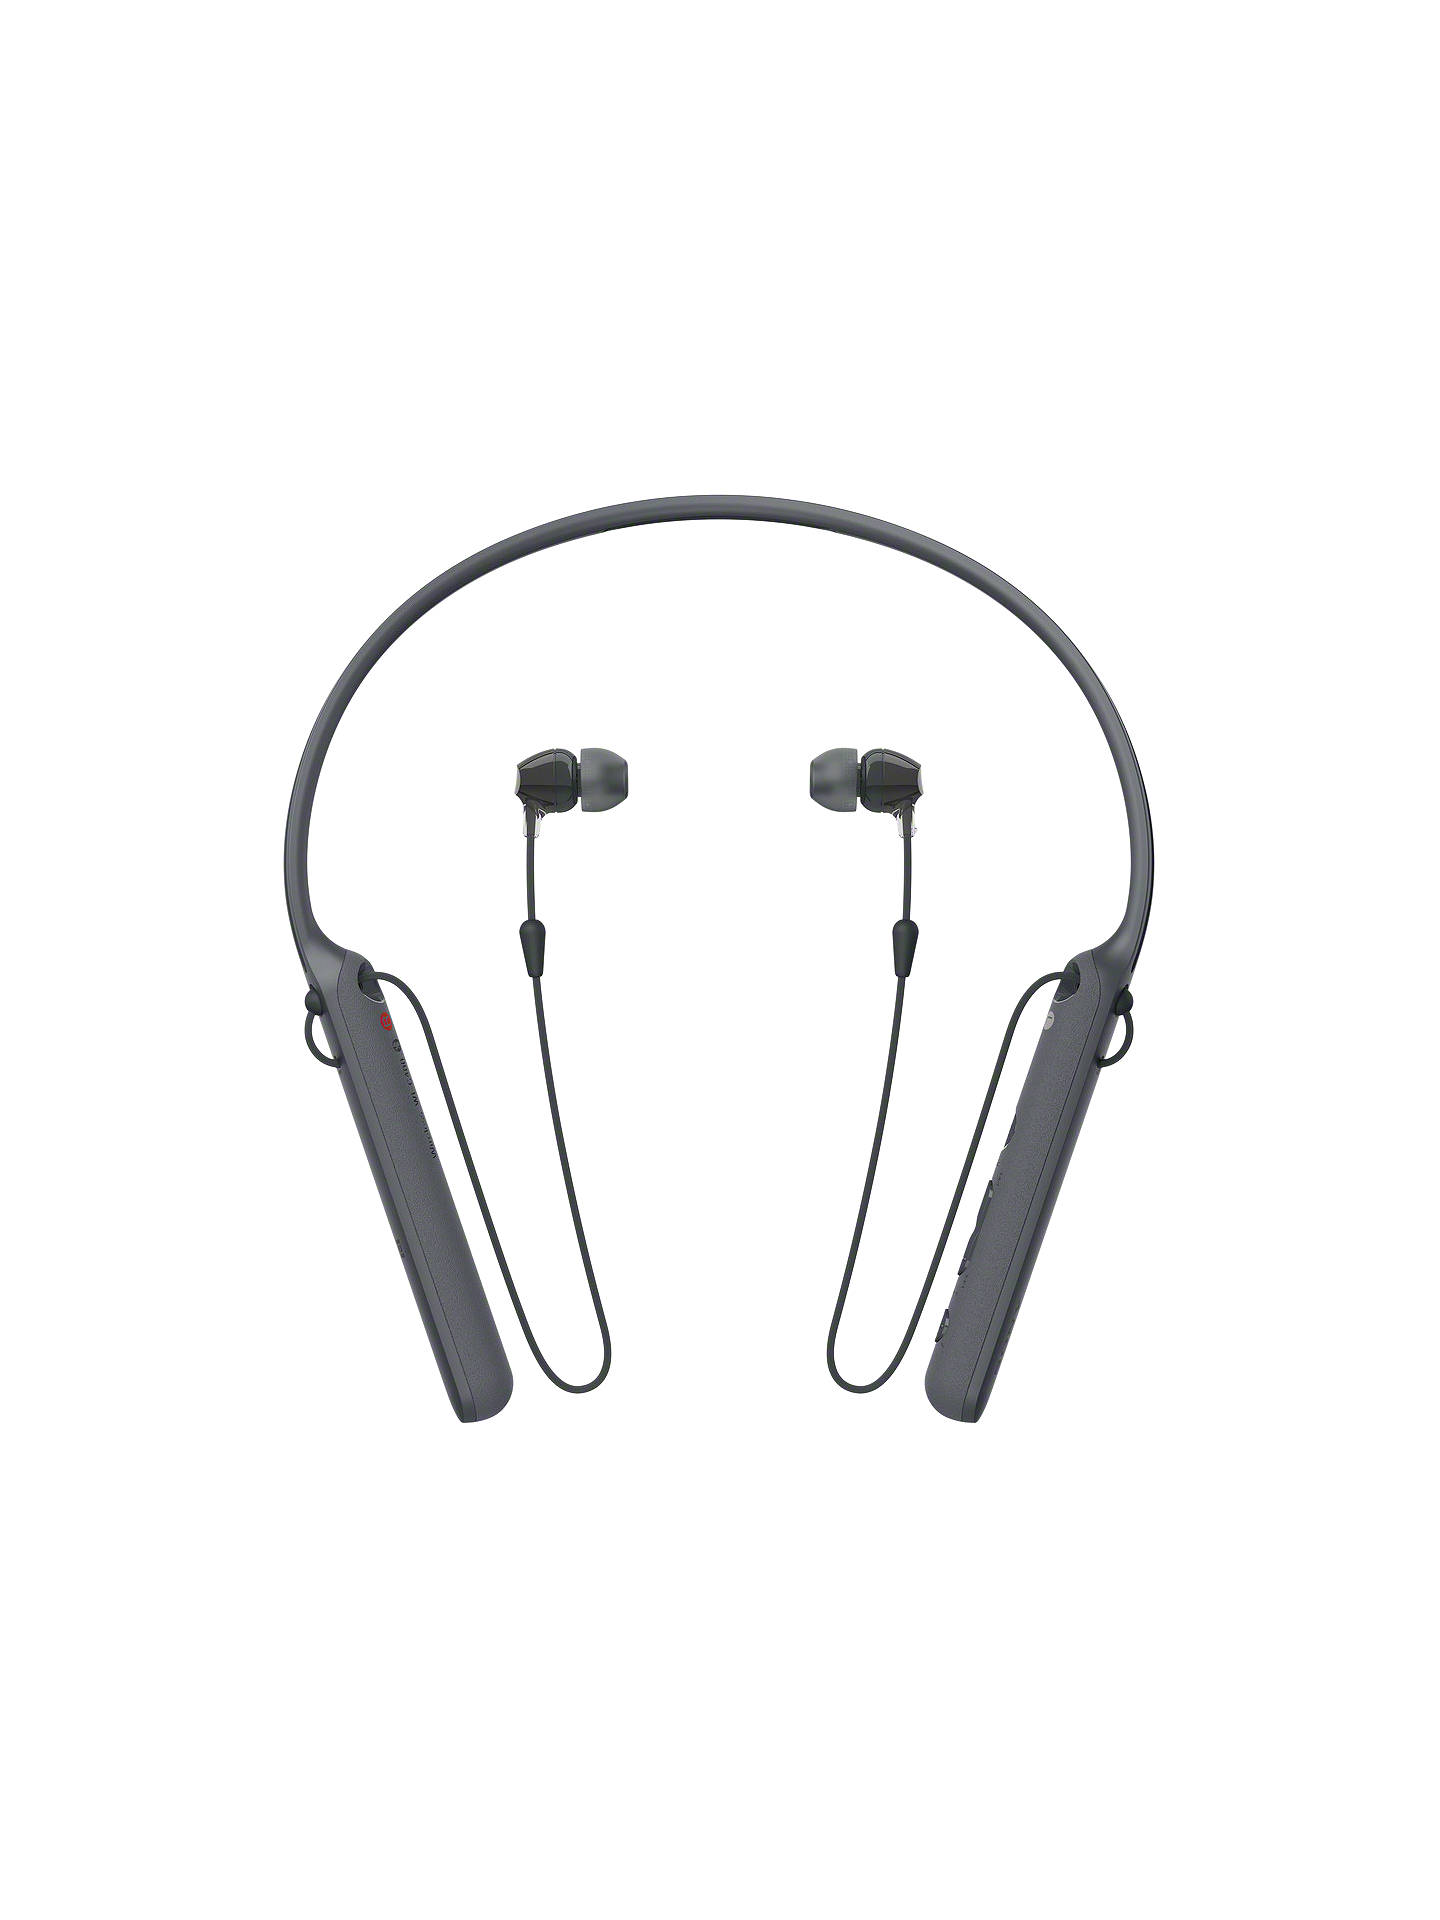 BuySony WI-C400 Bluetooth NFC Wireless In-Ear Headphones with Mic/Remote & Neckband, Black Online at johnlewis.com